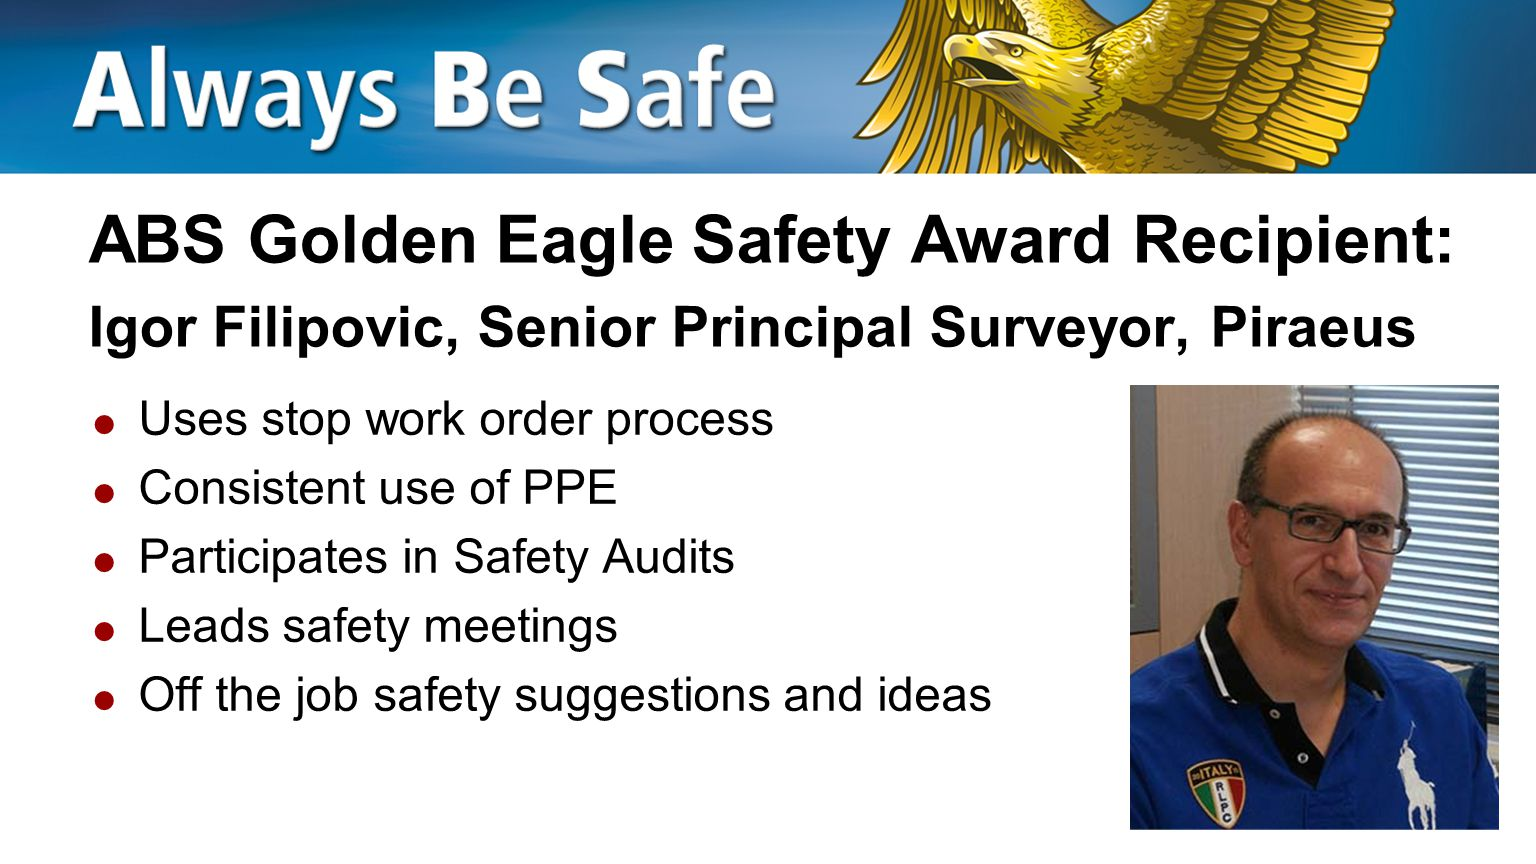 ABS Golden Eagle Safety Award Recipient: Fehmi Yamanerol, Senior Surveyor, Istanbul  Allocates time to safety activities  Practices good housekeeping  Promptly reports HSE incidents  Shares HSE lessons learned  Recognizes peers for safe actions  Off the job safety suggestions